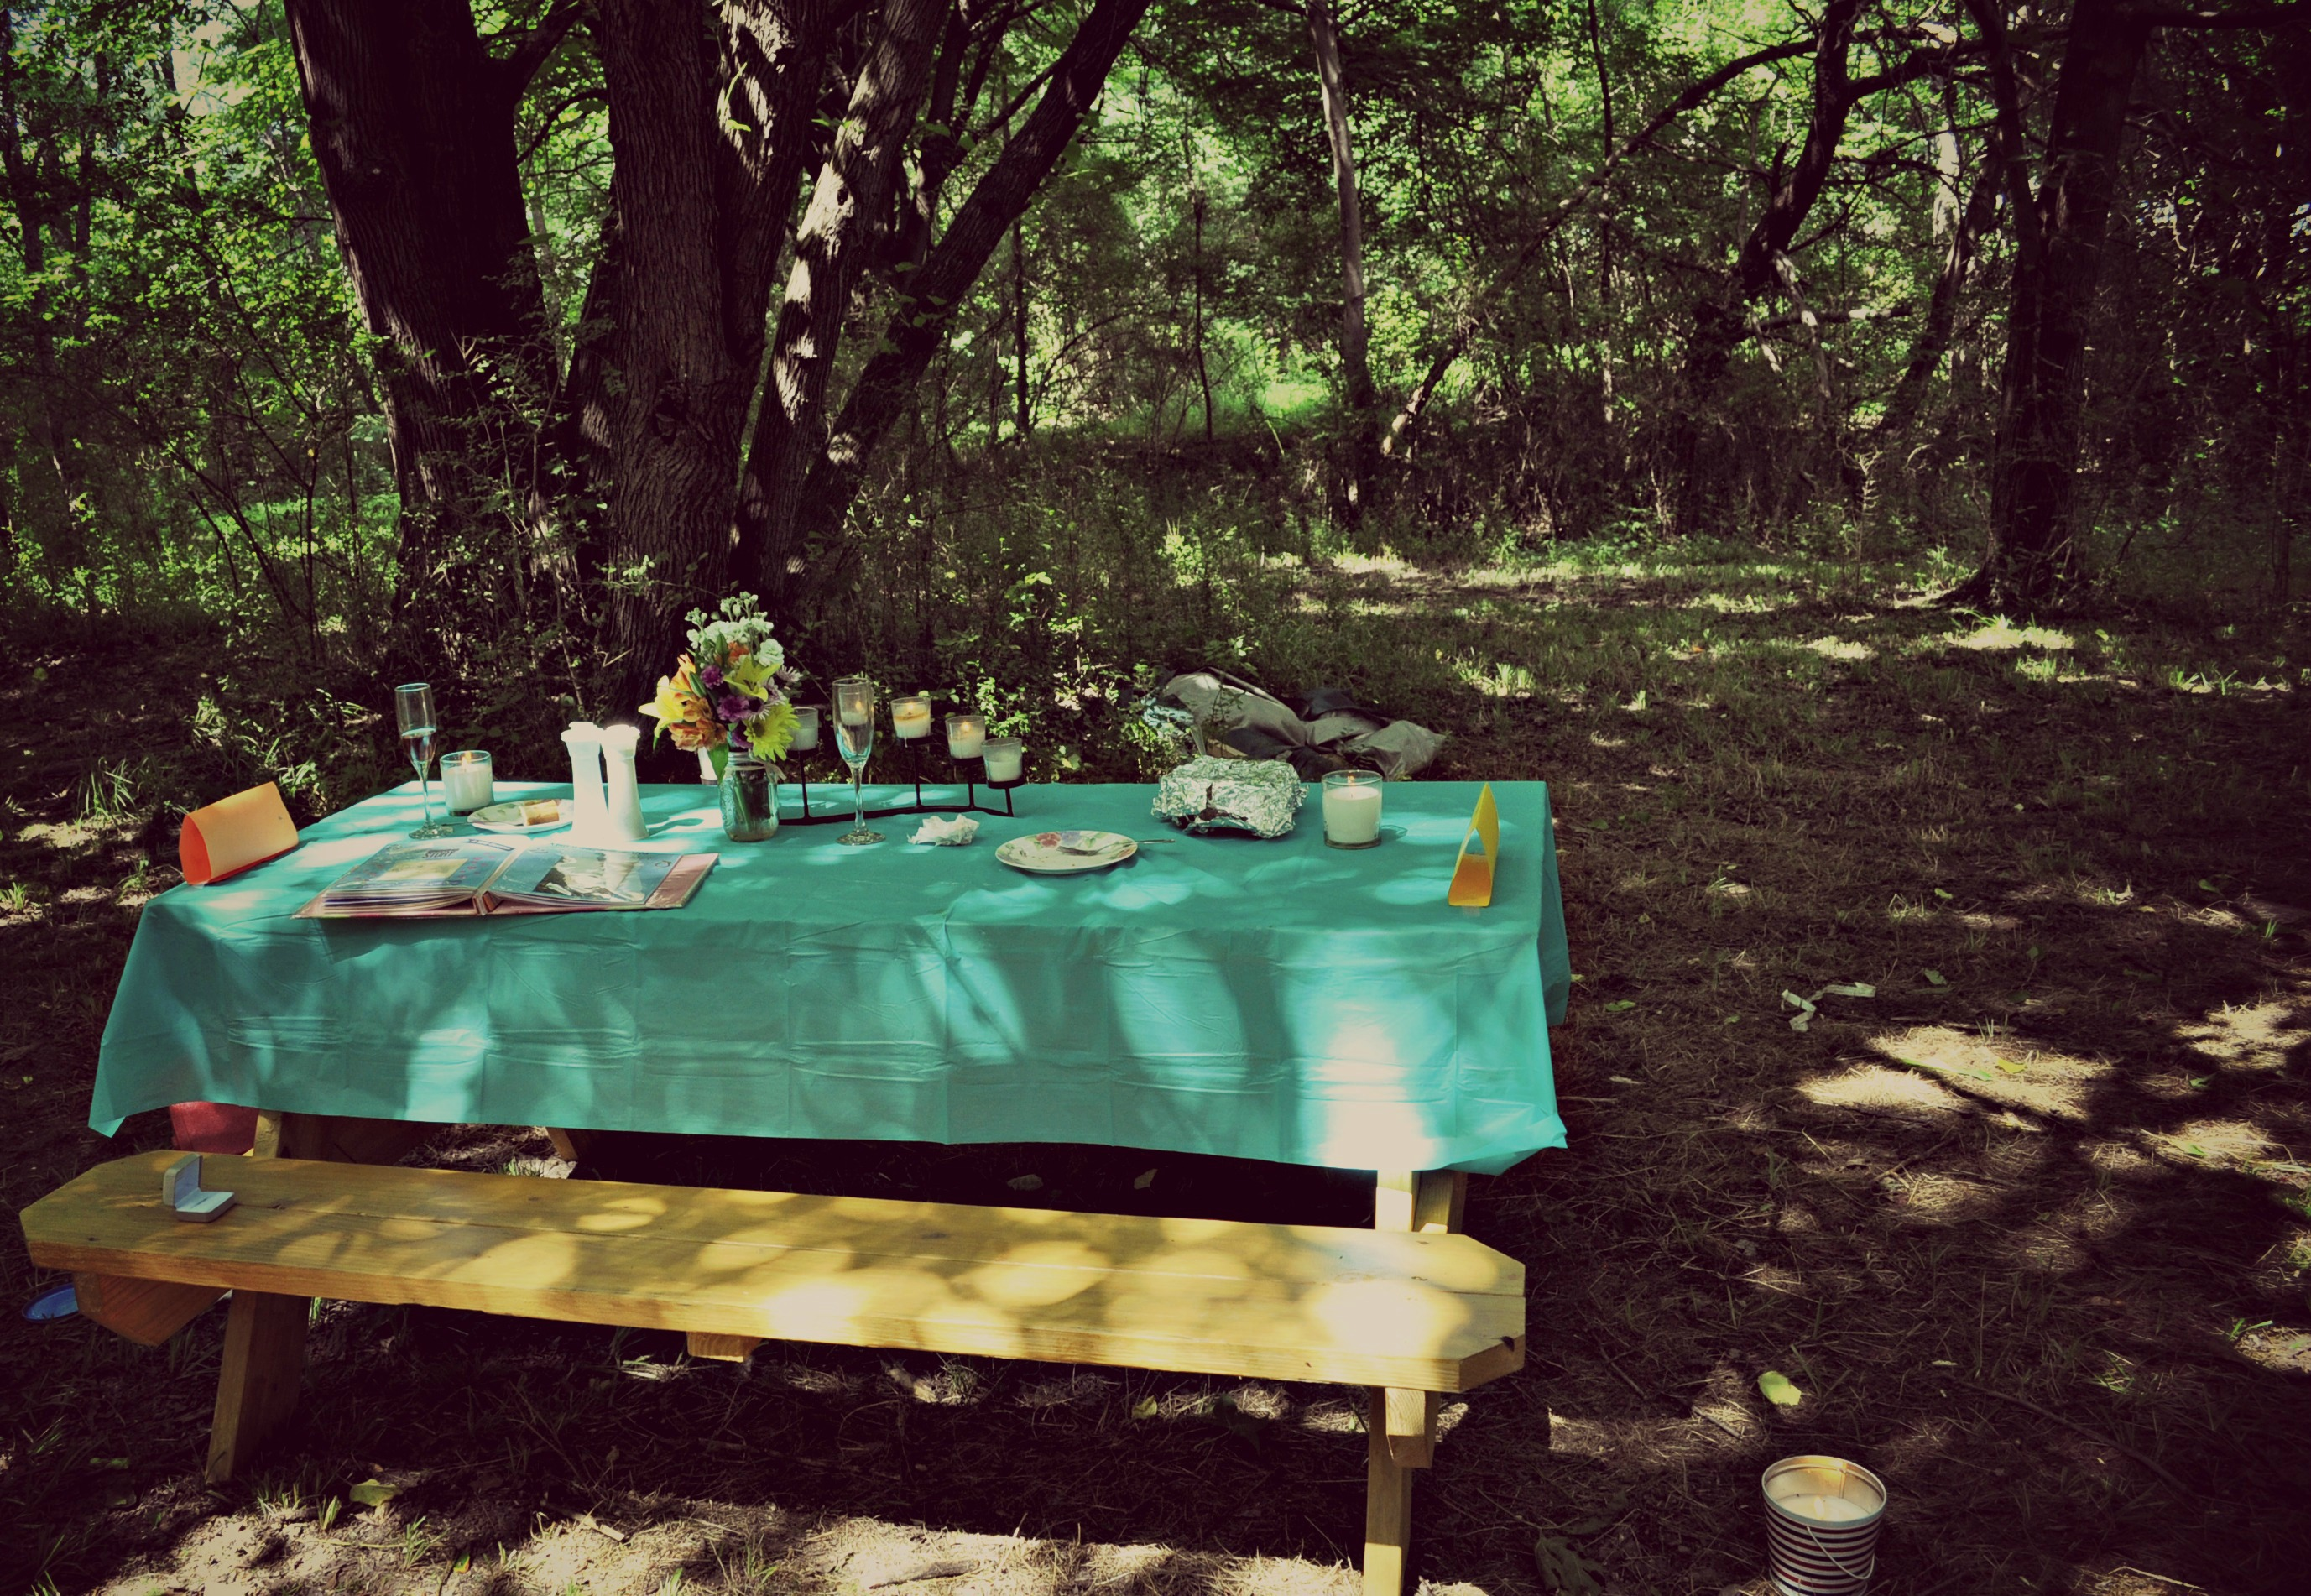 Picnic Proposal Idea